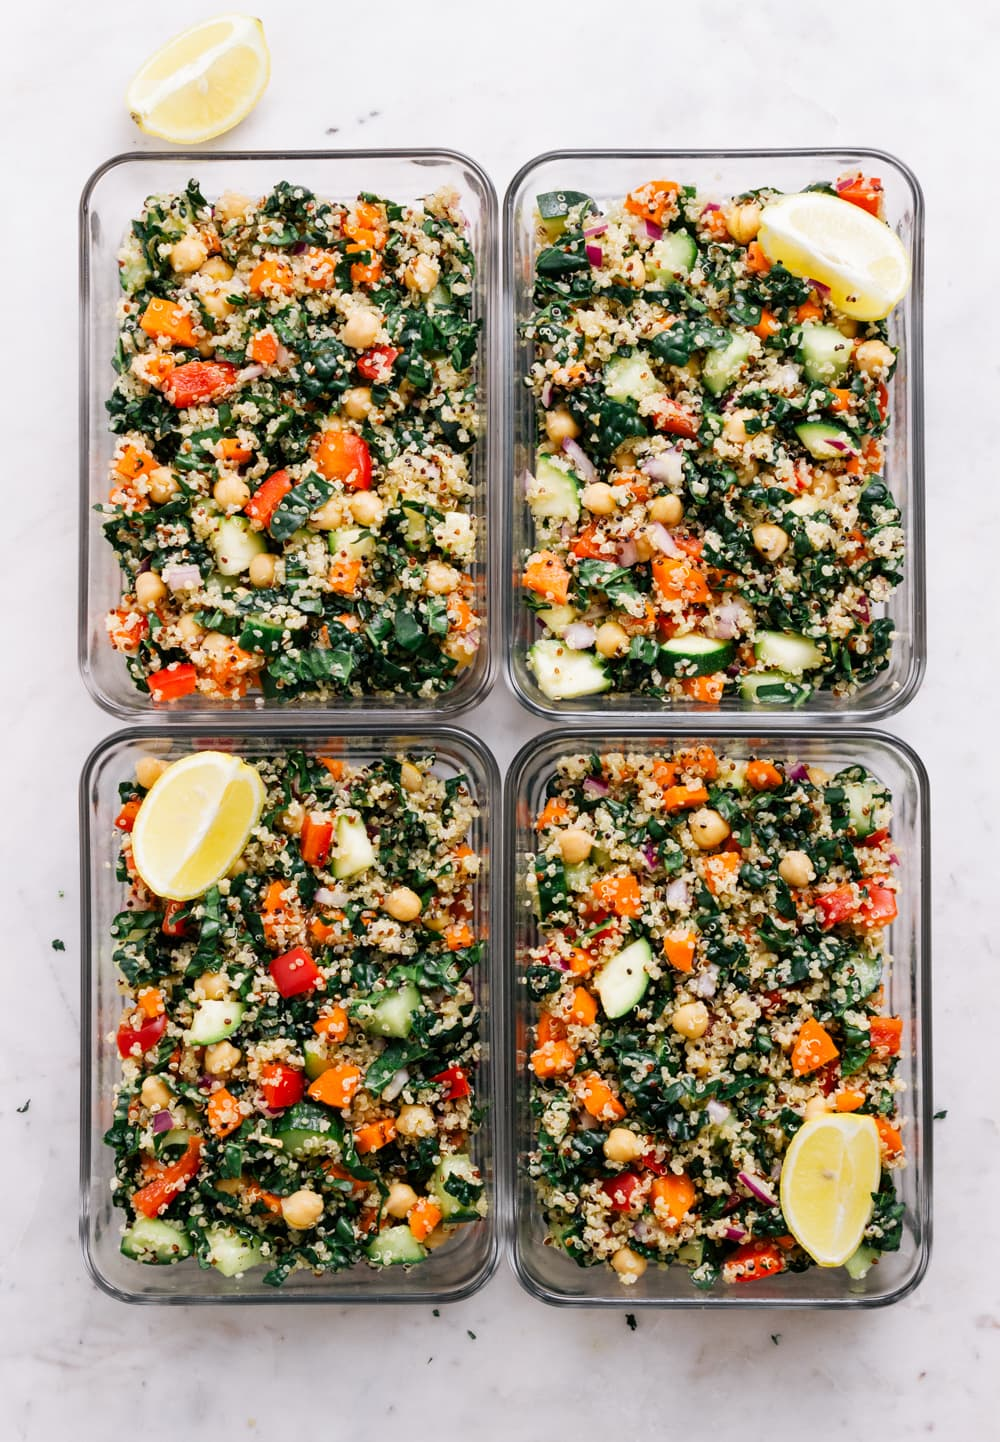 top down view of 4 meal prep containers filled with kale and quinoa salad with lemon wedge.